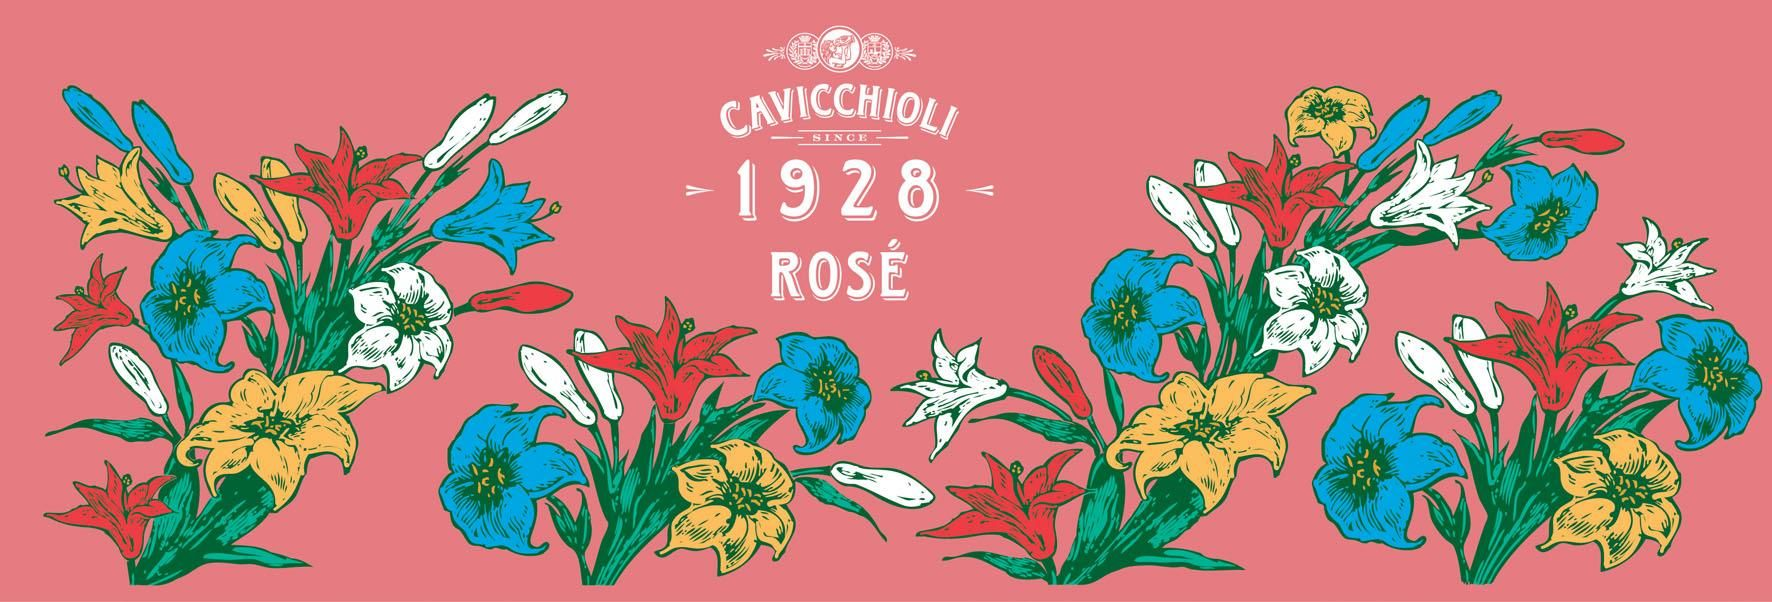 Cantine Cavicchioli Rose Spumante Dolce Front Label